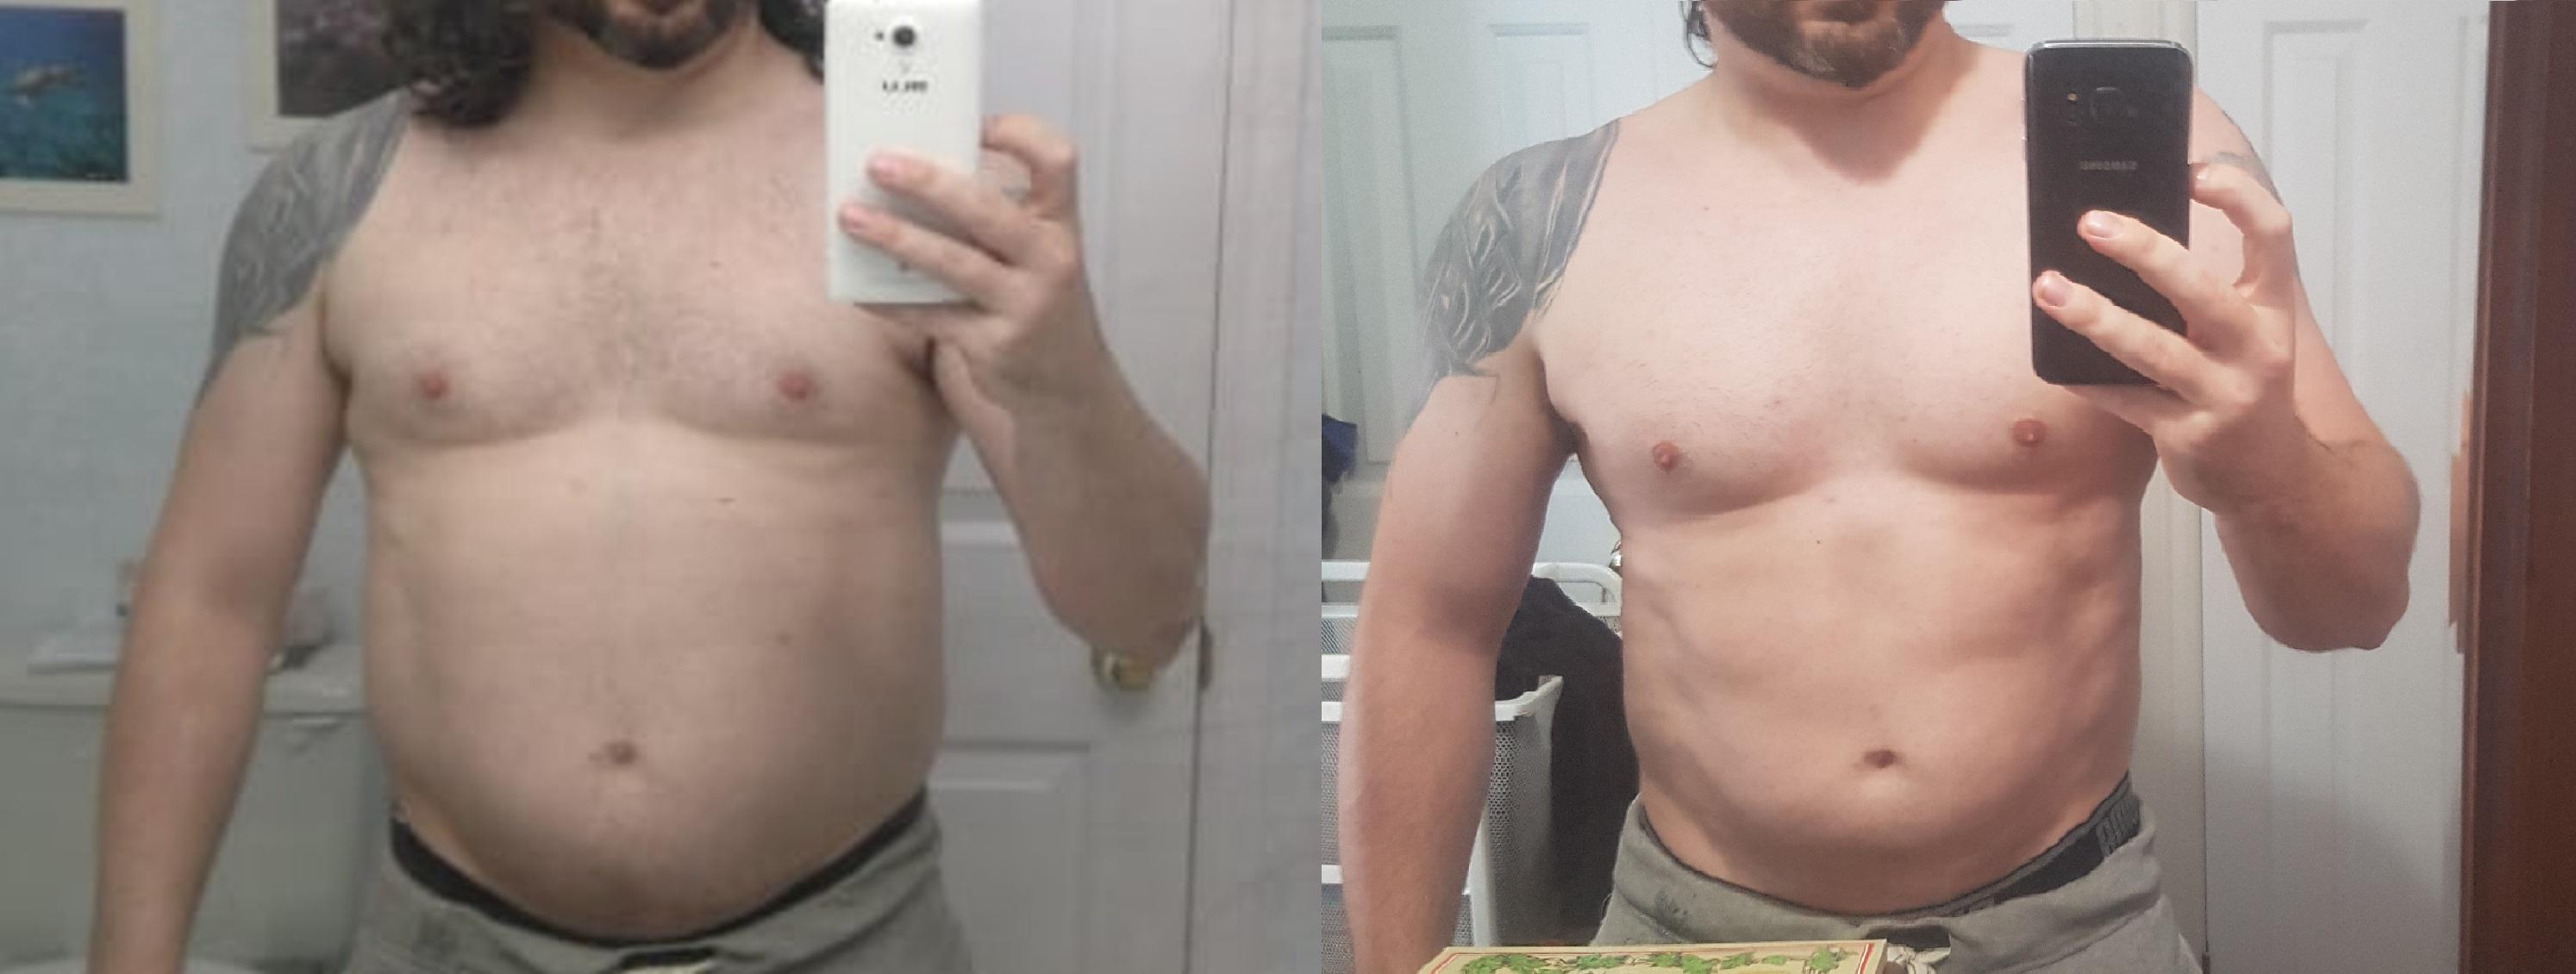 15 lbs Weight Loss Before and After 5 foot 7 Male 203 lbs to 188 lbs